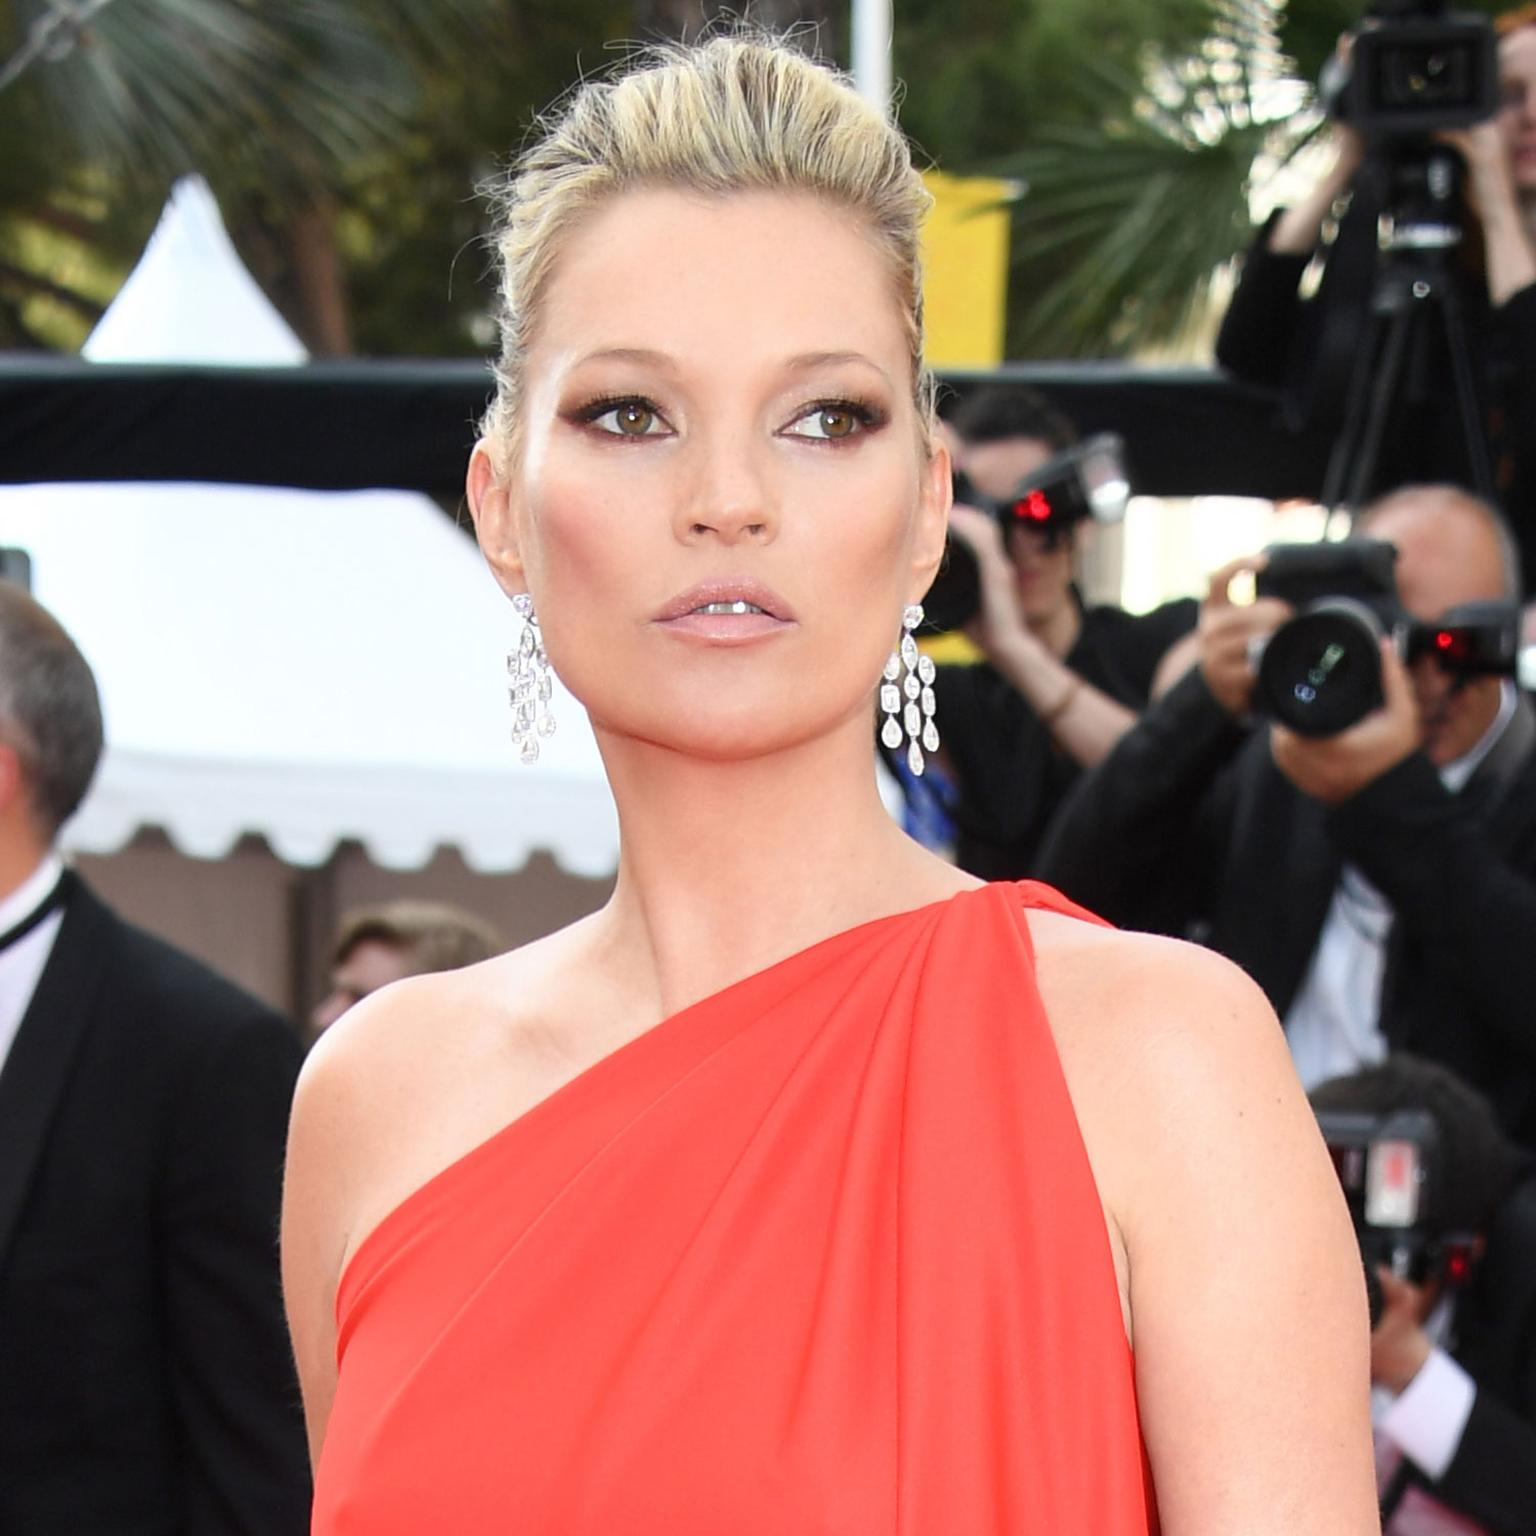 Cannes 2016 Day 6: Kate Moss in Chopard